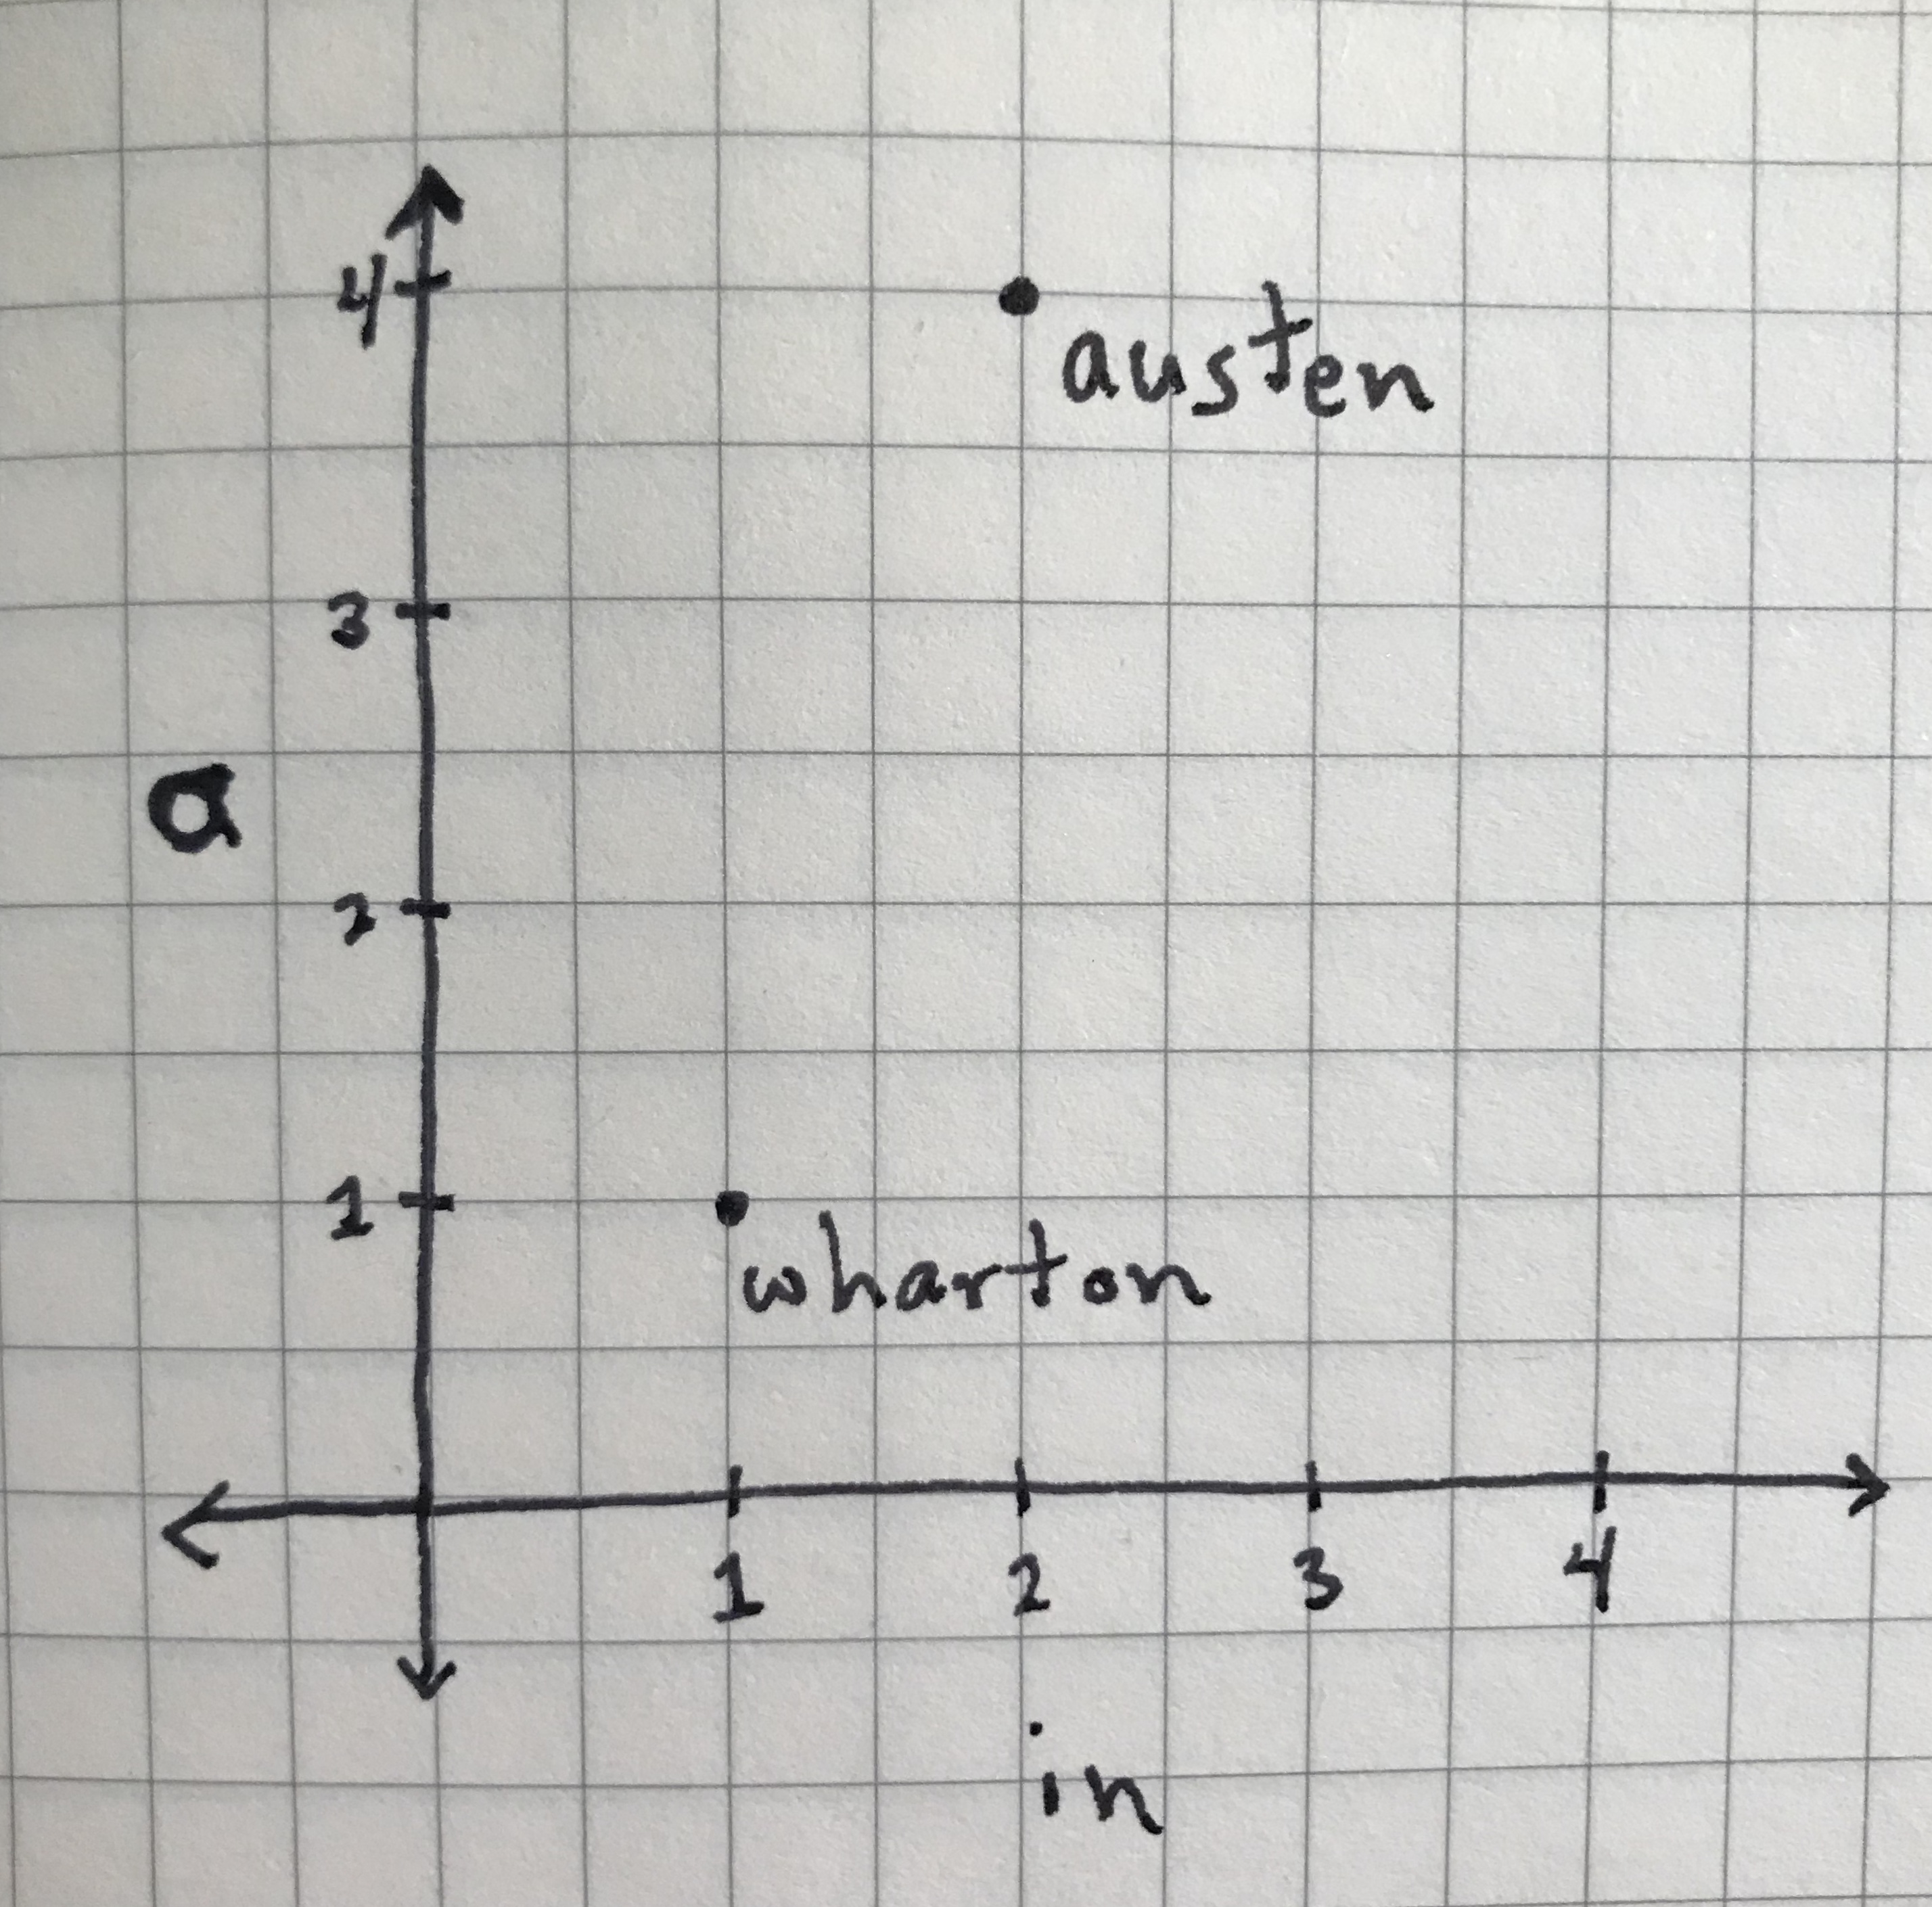 'austen' and 'wharton' samples represented as data points.